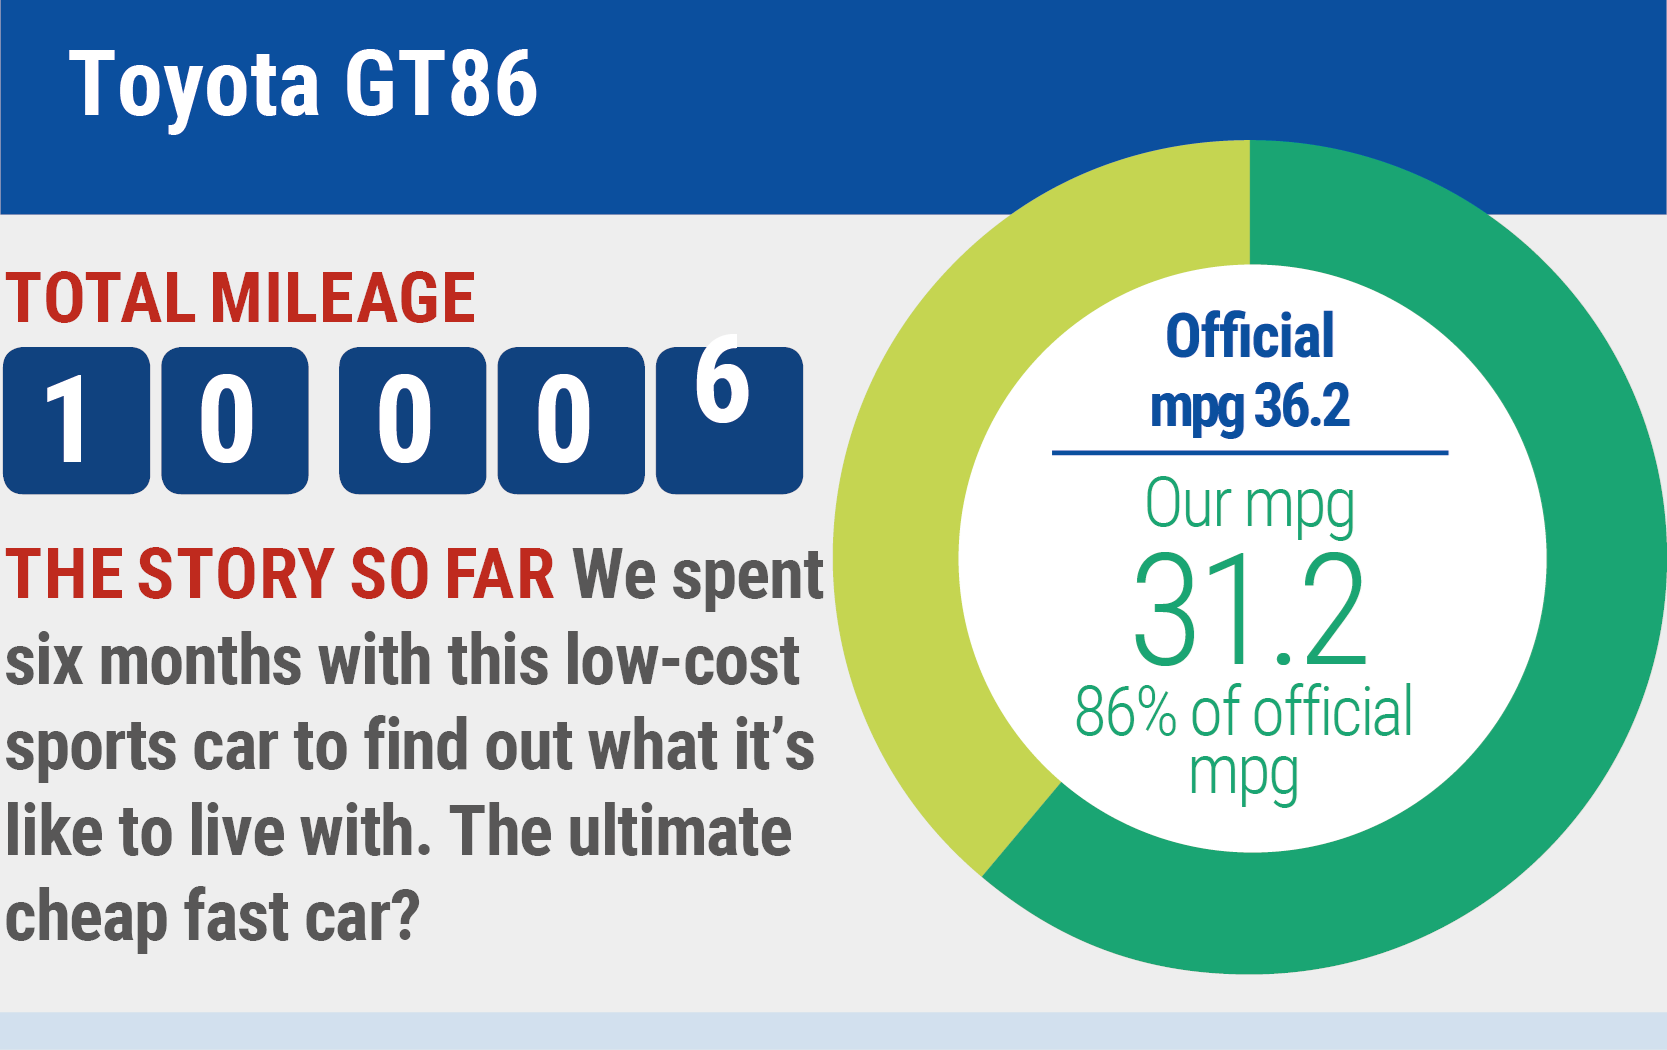 Toyota GT86 long-term test review mileage and fuel economy